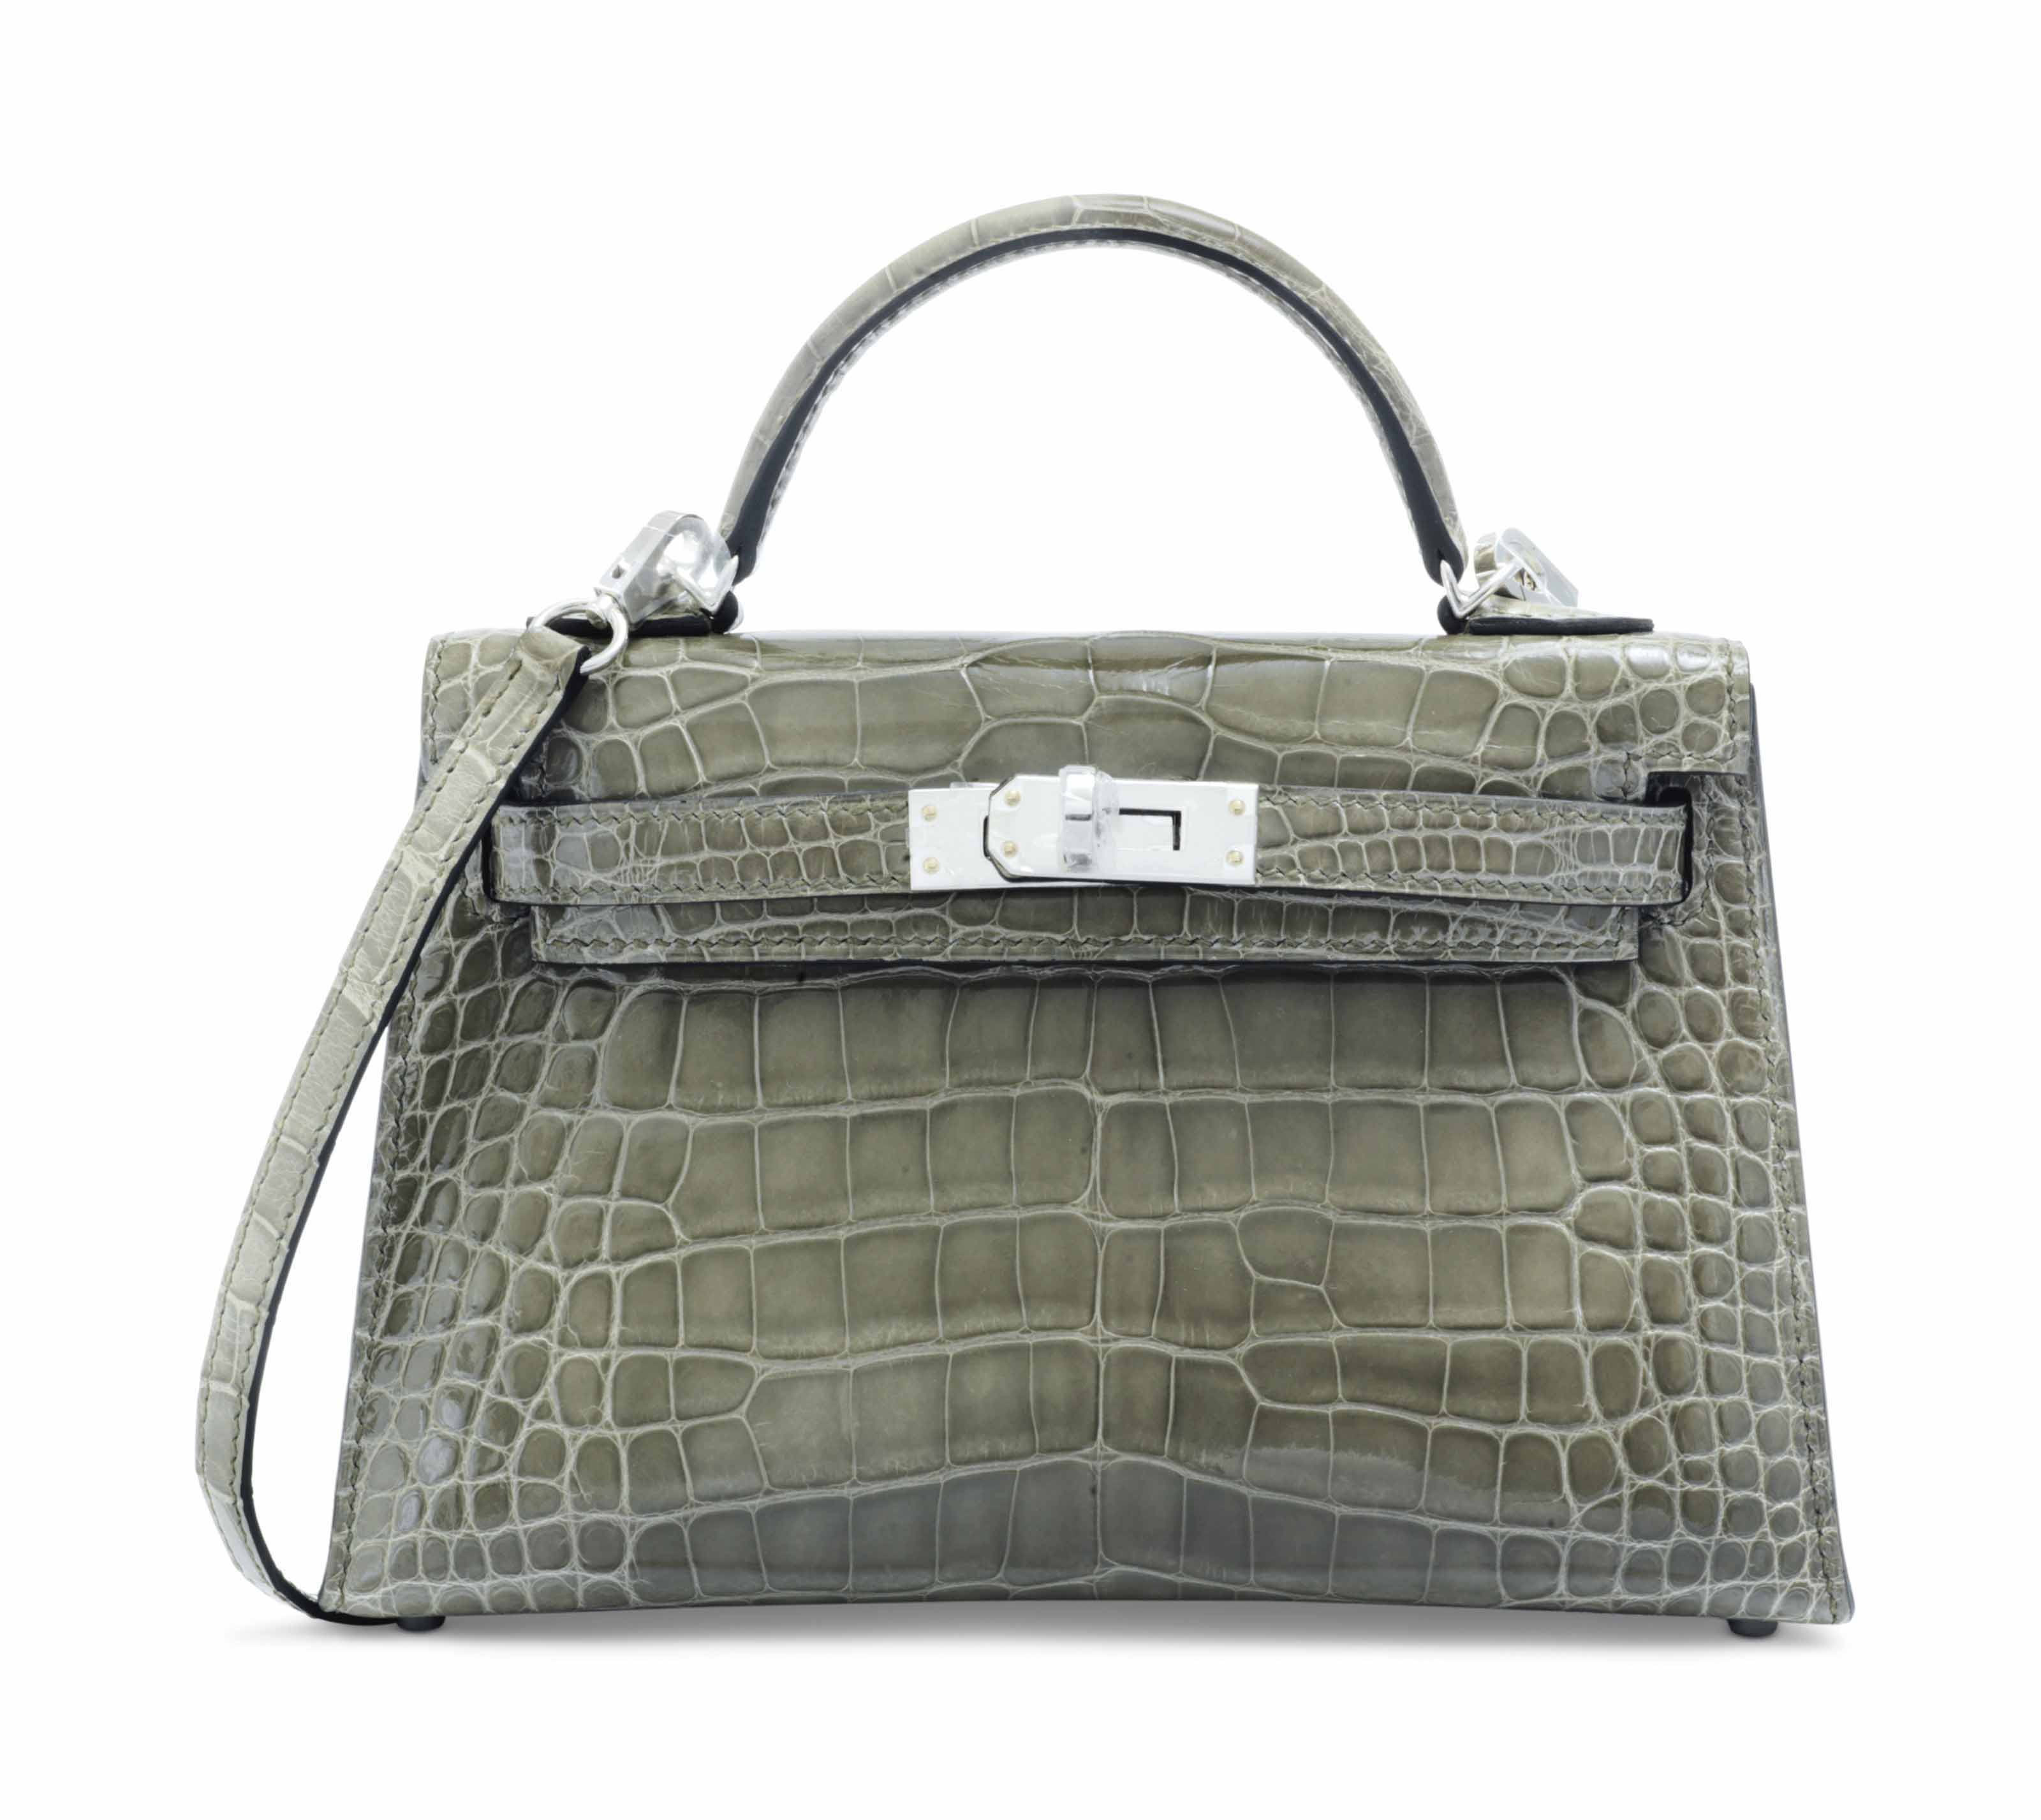 3c0a61df83 SAC MINI KELLY SELLIER 20 II EN ALLIGATOR LISSE GRIS TOURTERELLE, GARNITURE  EN MÉTAL ARGENTÉ PALLADIÉ